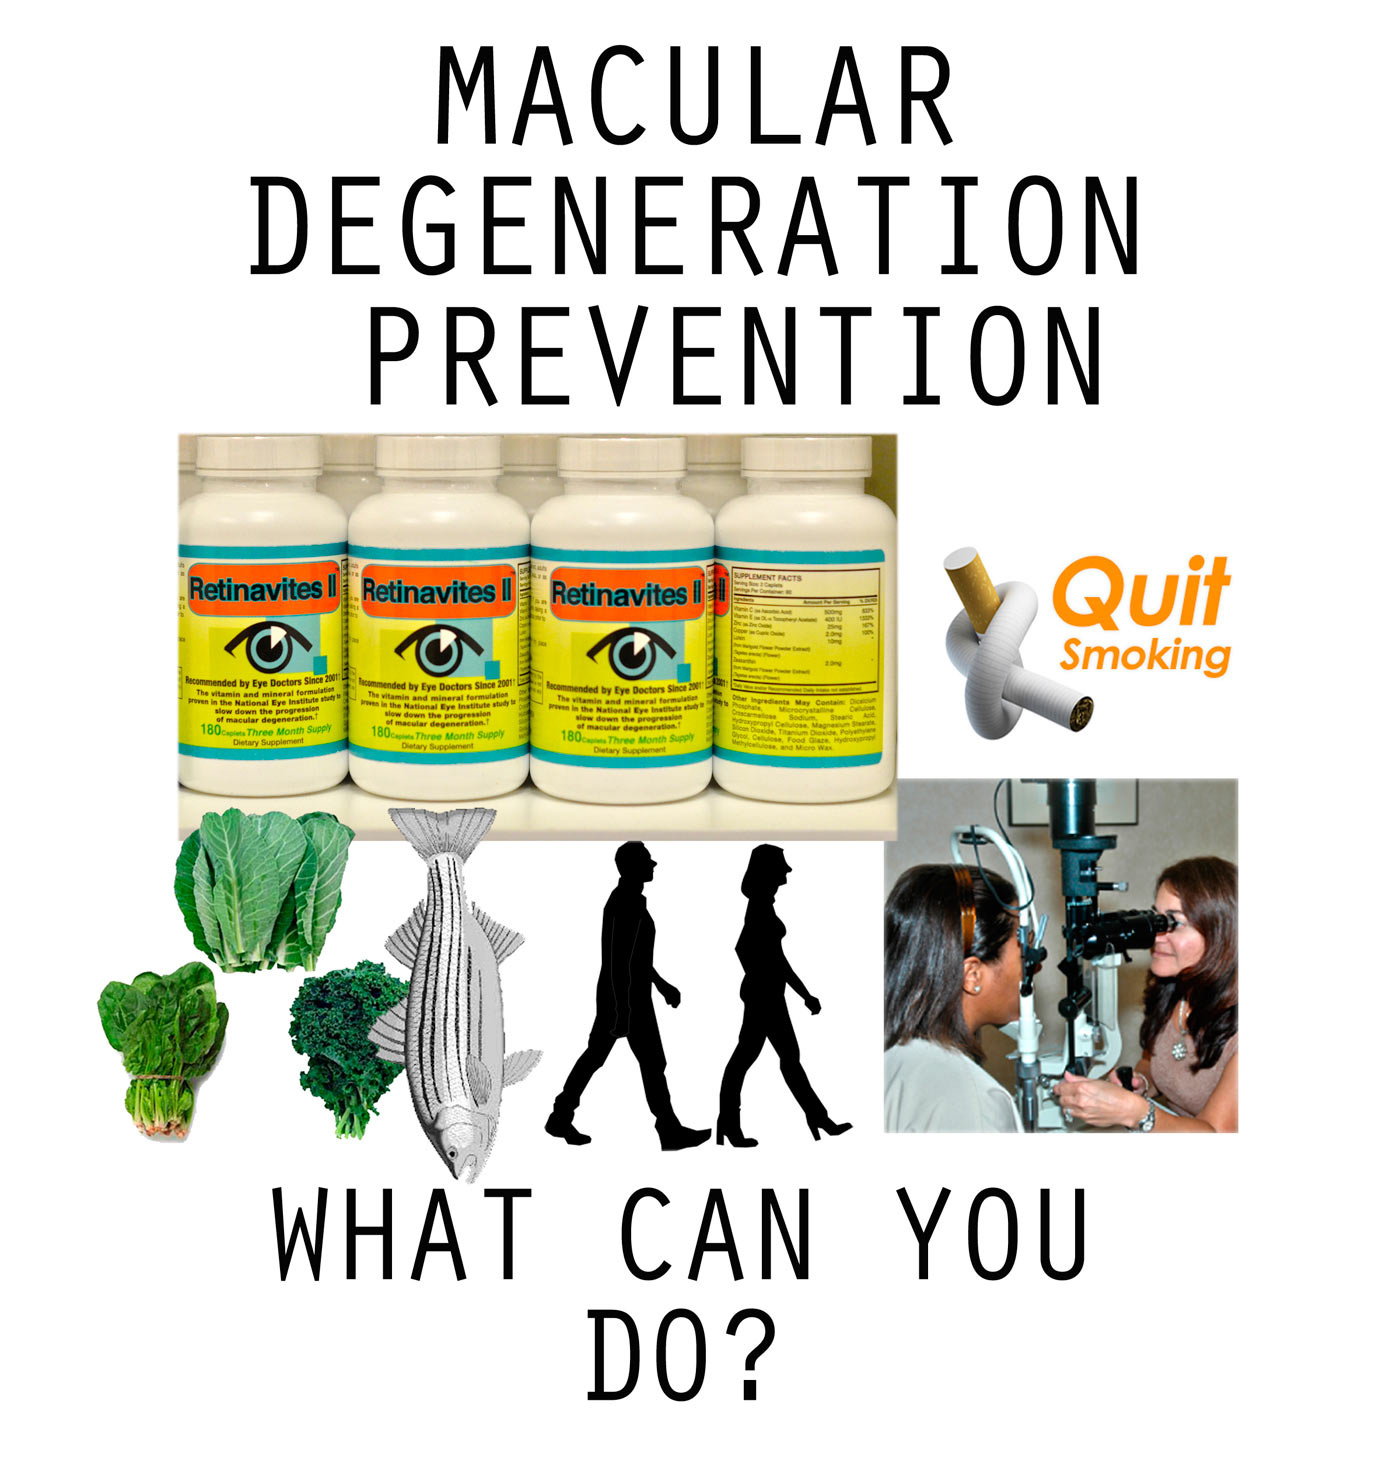 Macular Degeneration Prevention